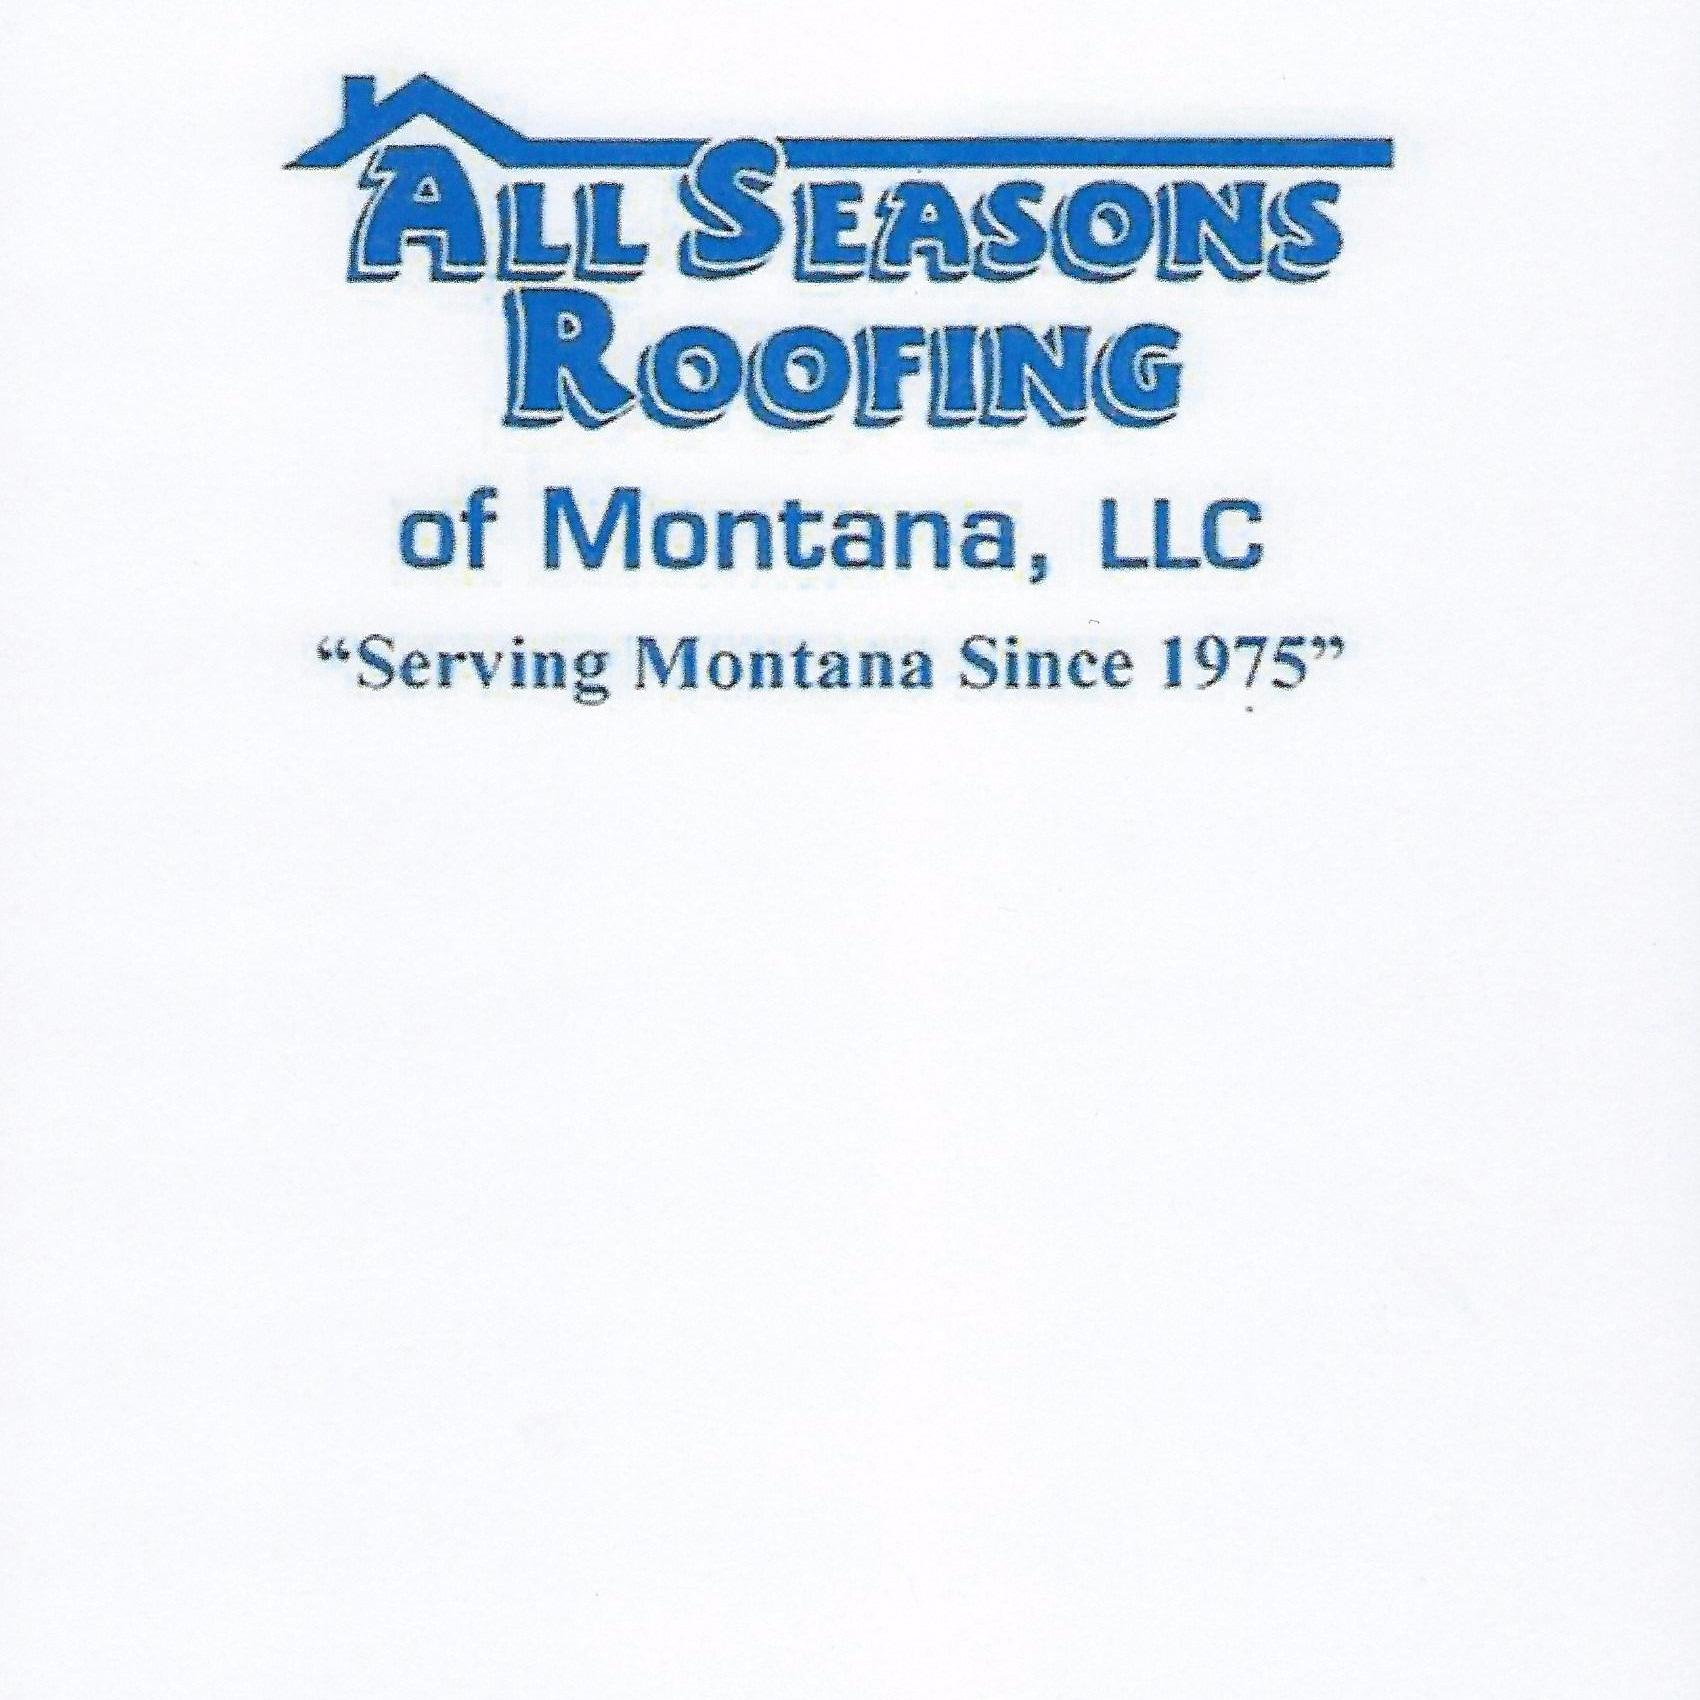 All Seasons Roofing